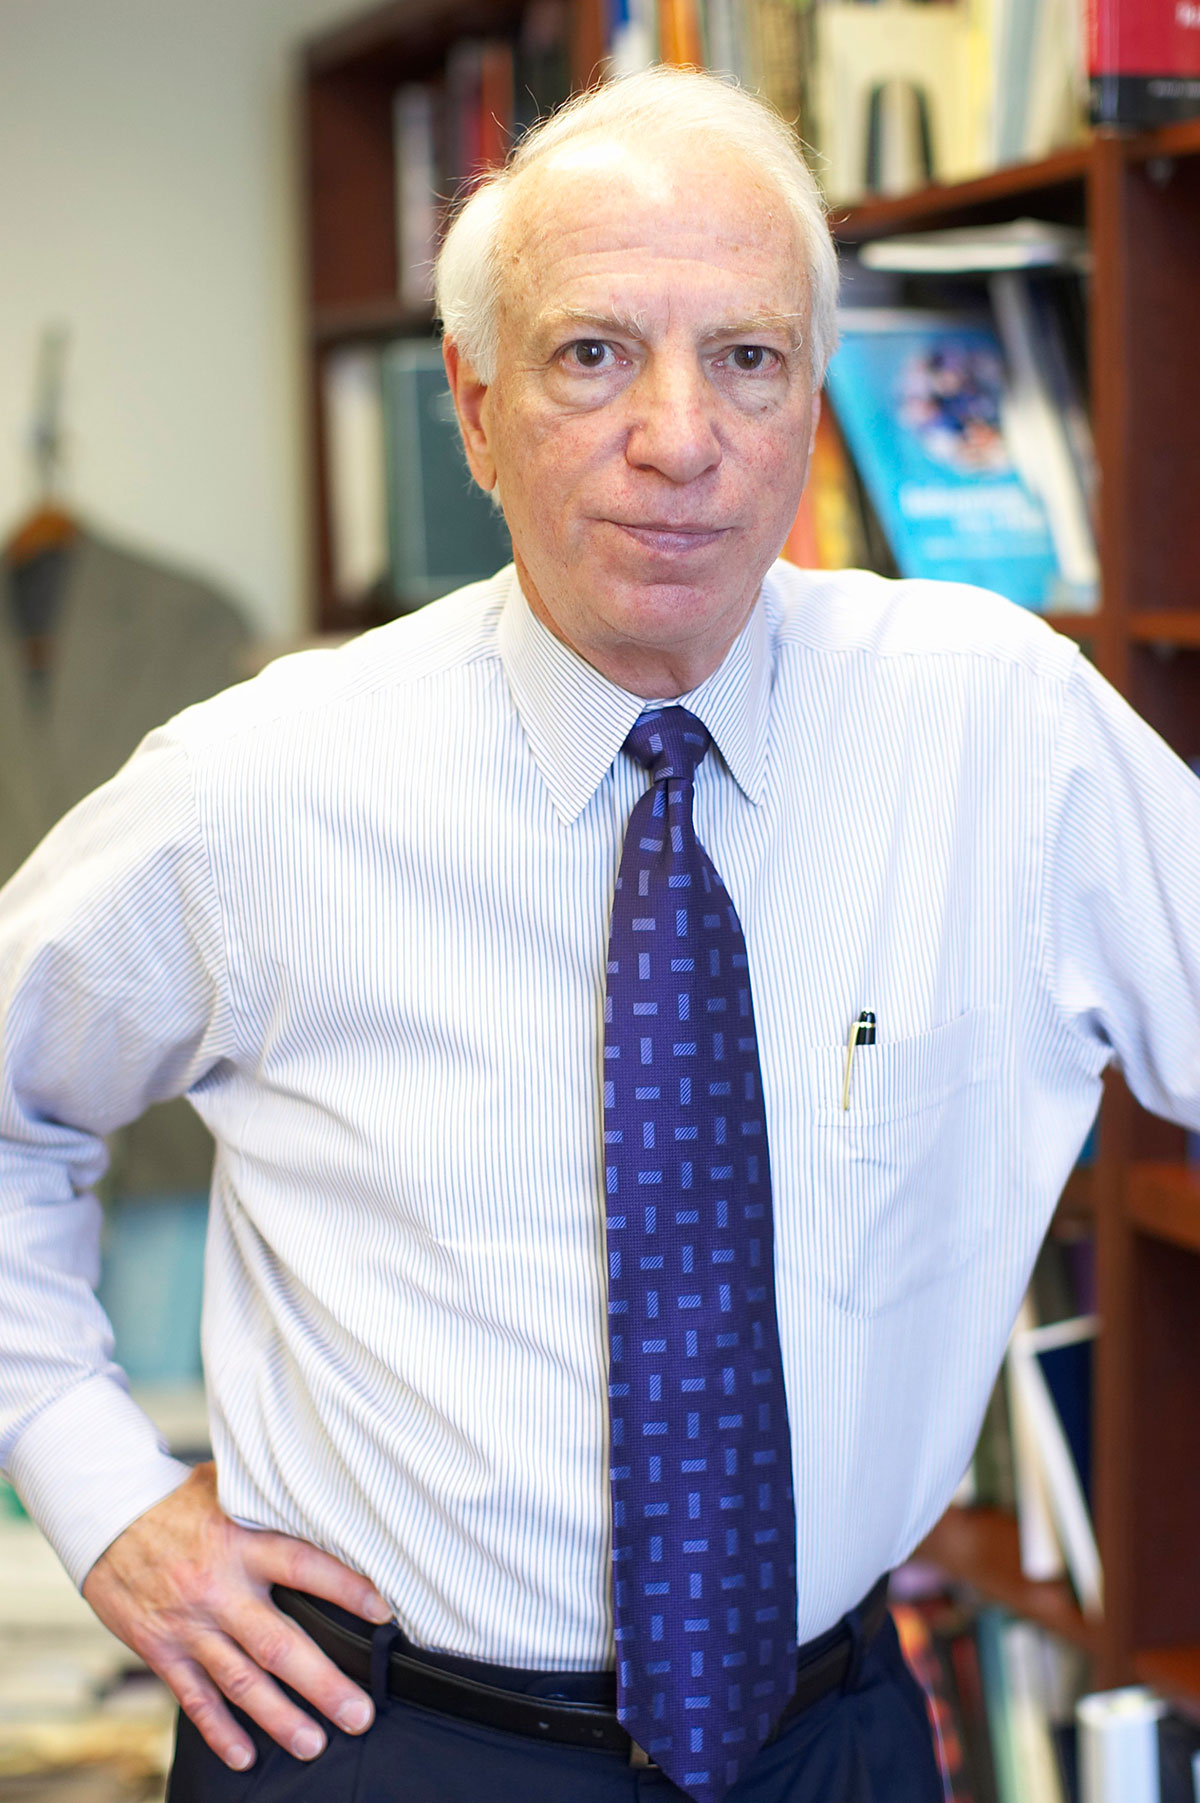 The American Psychiatric Association honored UVA's Richard Bonnie for his contributions to the field of law and psychiatry.